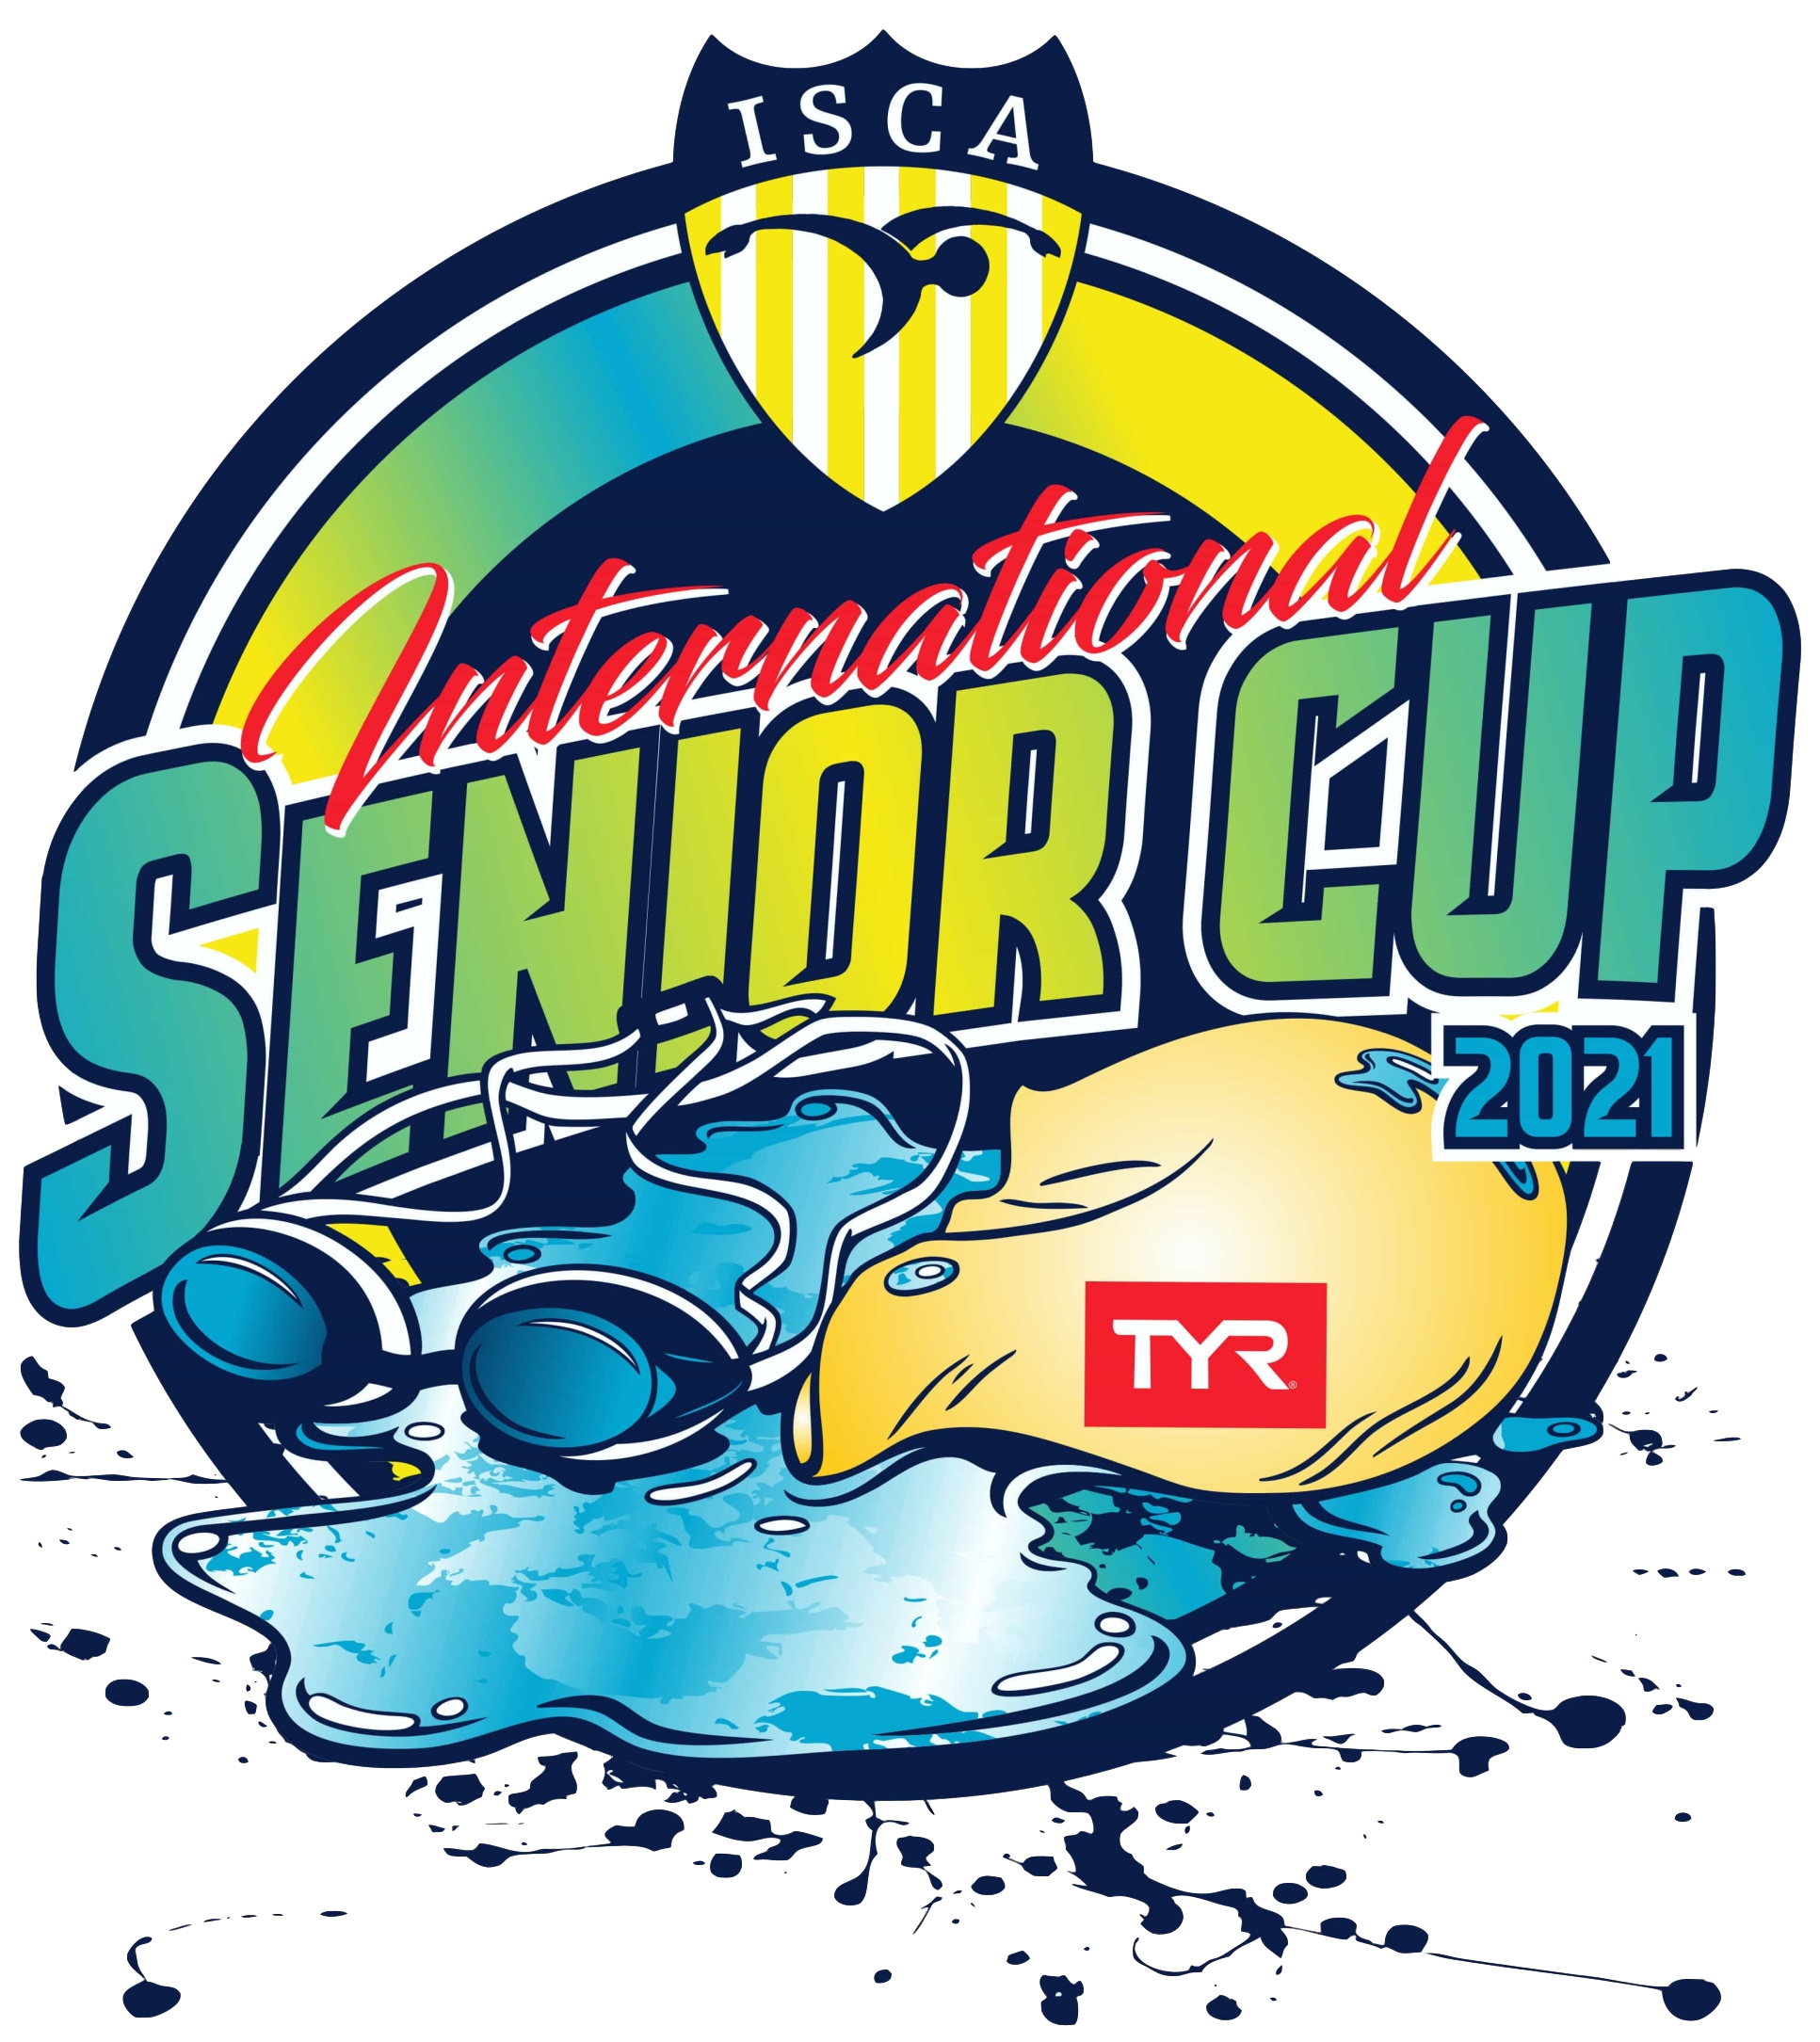 ISCA International Senior Cup 2021 logo clipped